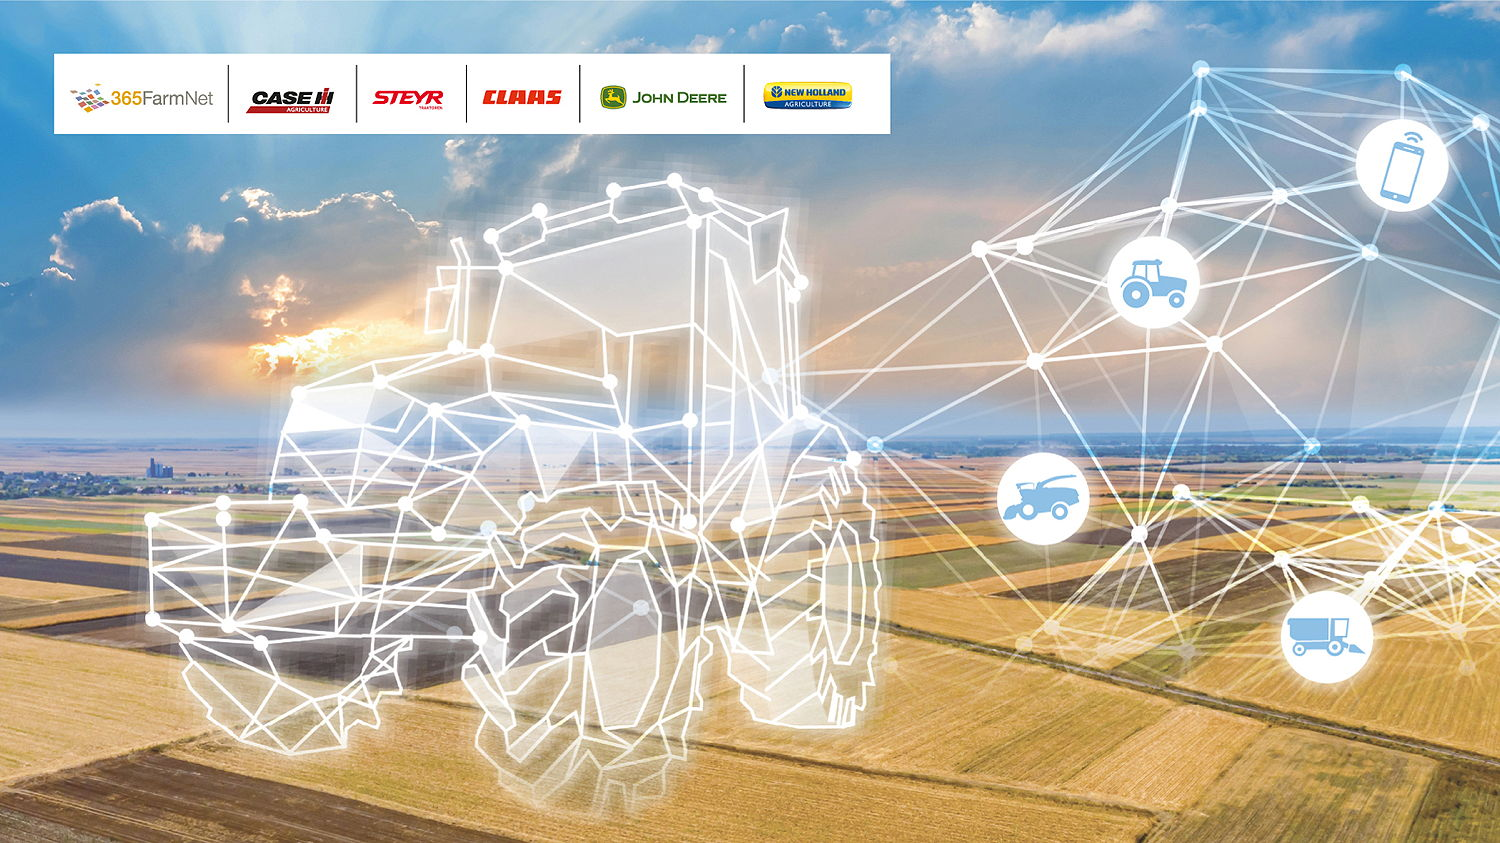 Case IH, Steyr and New Holland have now joined John Deere, Claas on the European farm management platform 365FarmNet